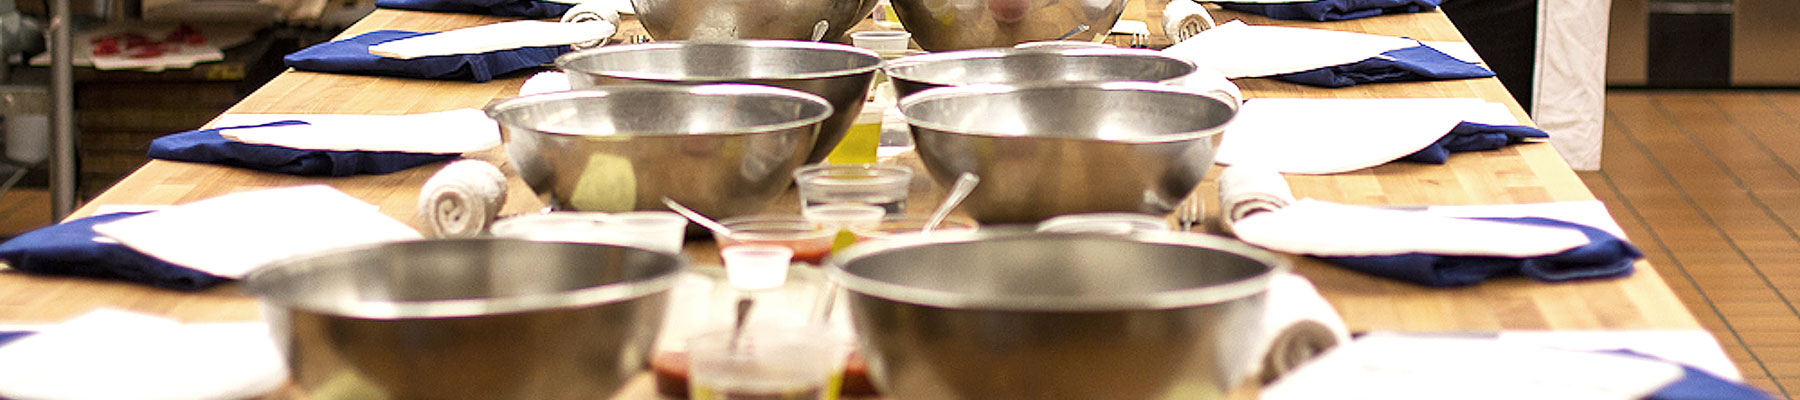 a table set with stainless steel mixing bowls, ready for class